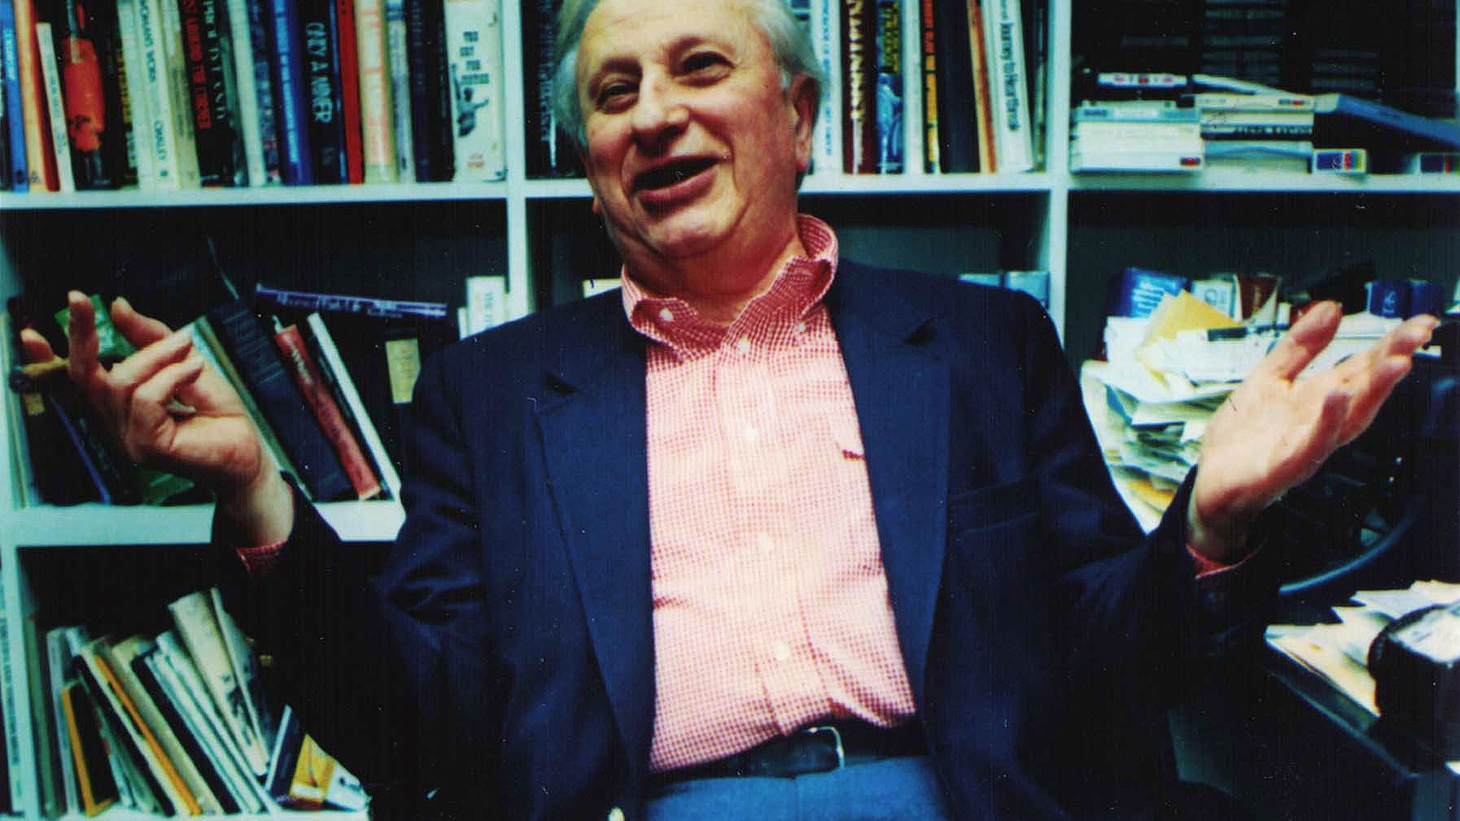 A masterclass in the art of the interview with the late giant of the field, Studs Terkel, in which Terkel spars with Muhammad Ali, arm-wrestles Zero Mostel, and performs guerilla street theater with Saul Alinsky.